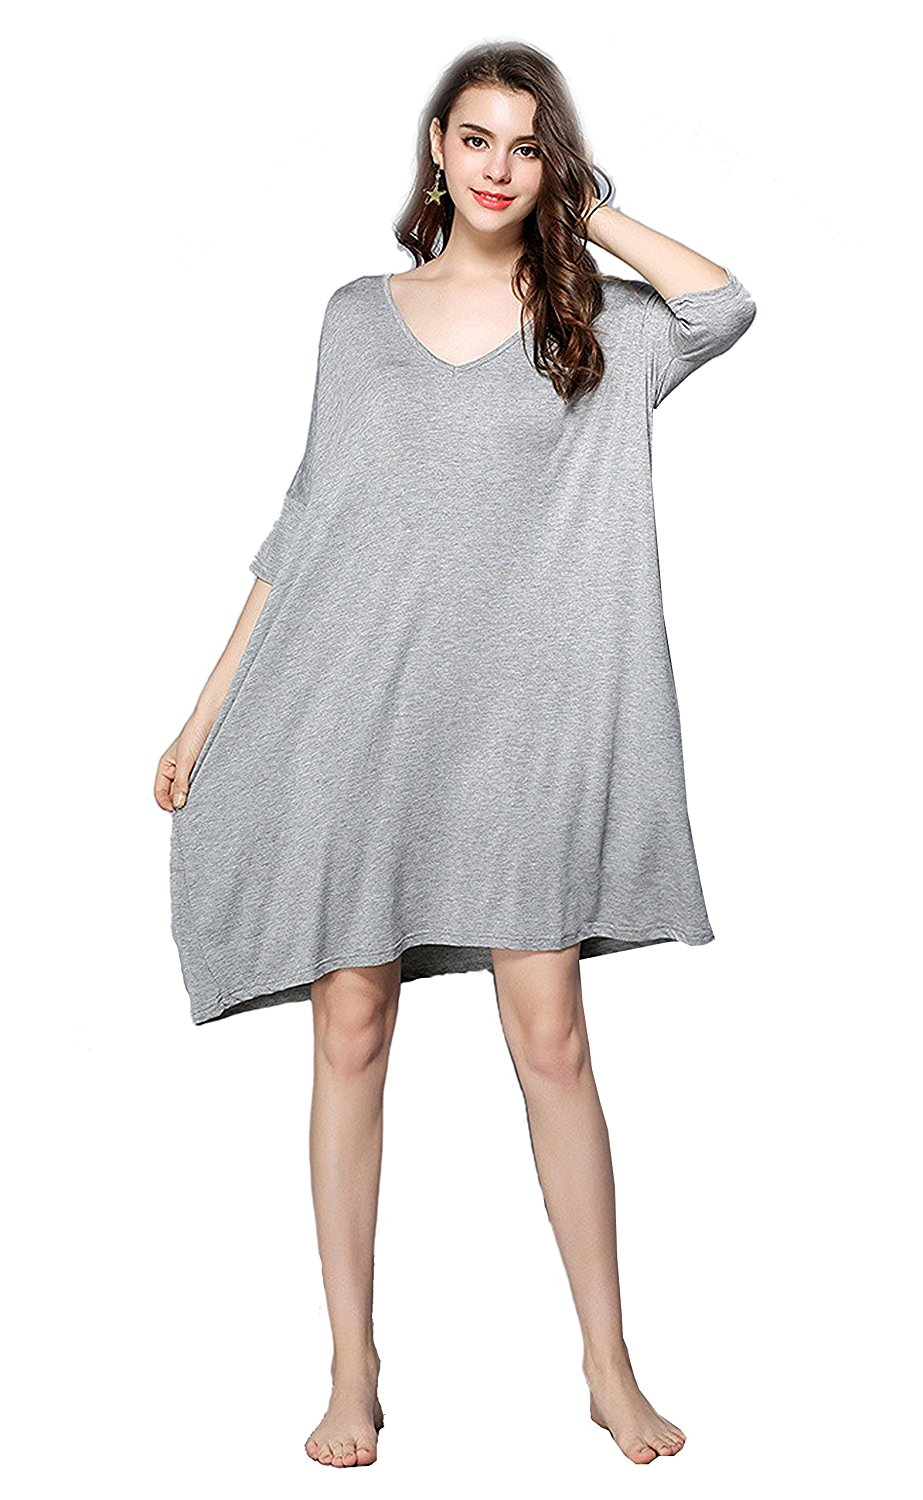 36afaec220e Get Quotations · EPLAZA Women Soft Modal Plus Size Nightgowns Sleep Lounge  Wear Dress Elbow Sleeve